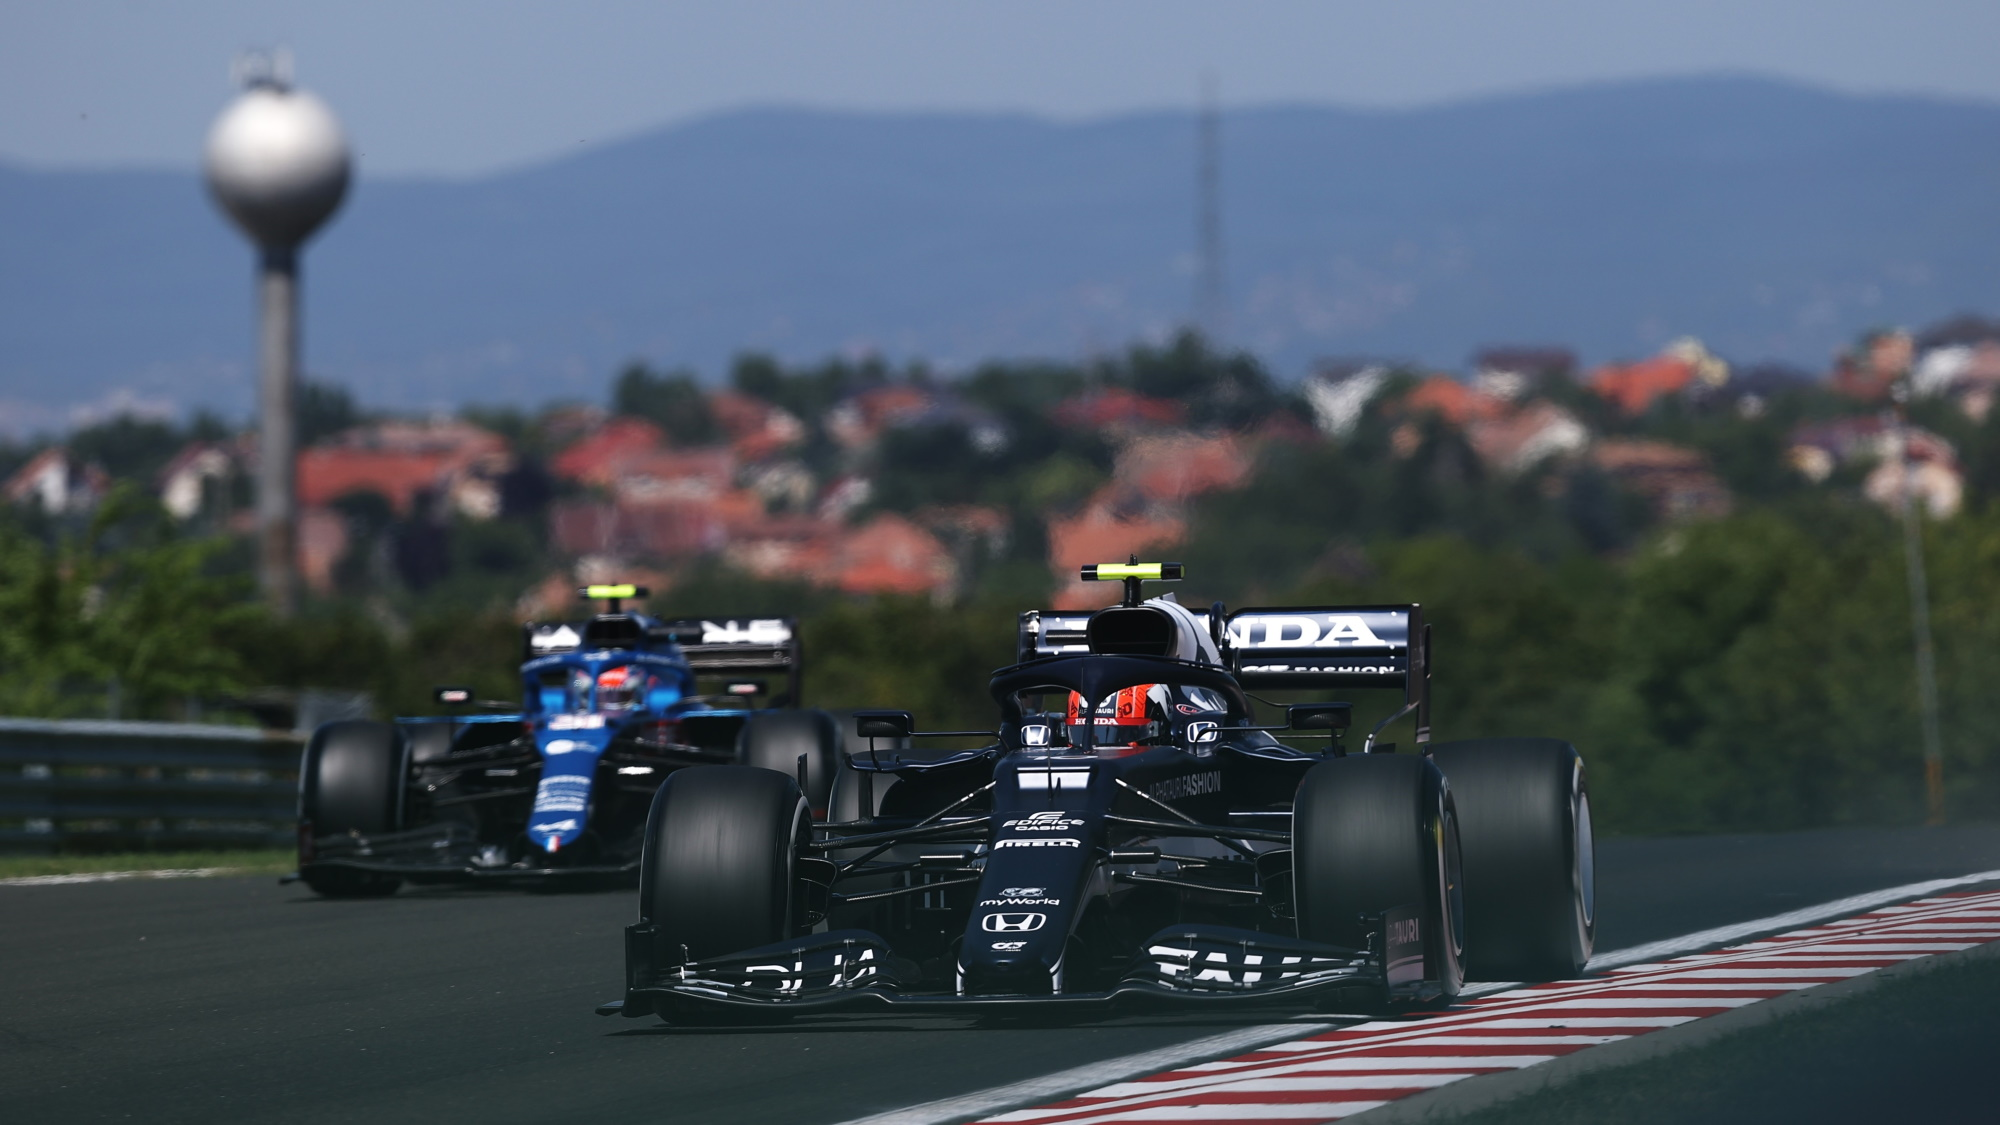 F1 Qualifying | F1 Main Race Live Stream Online Link 4